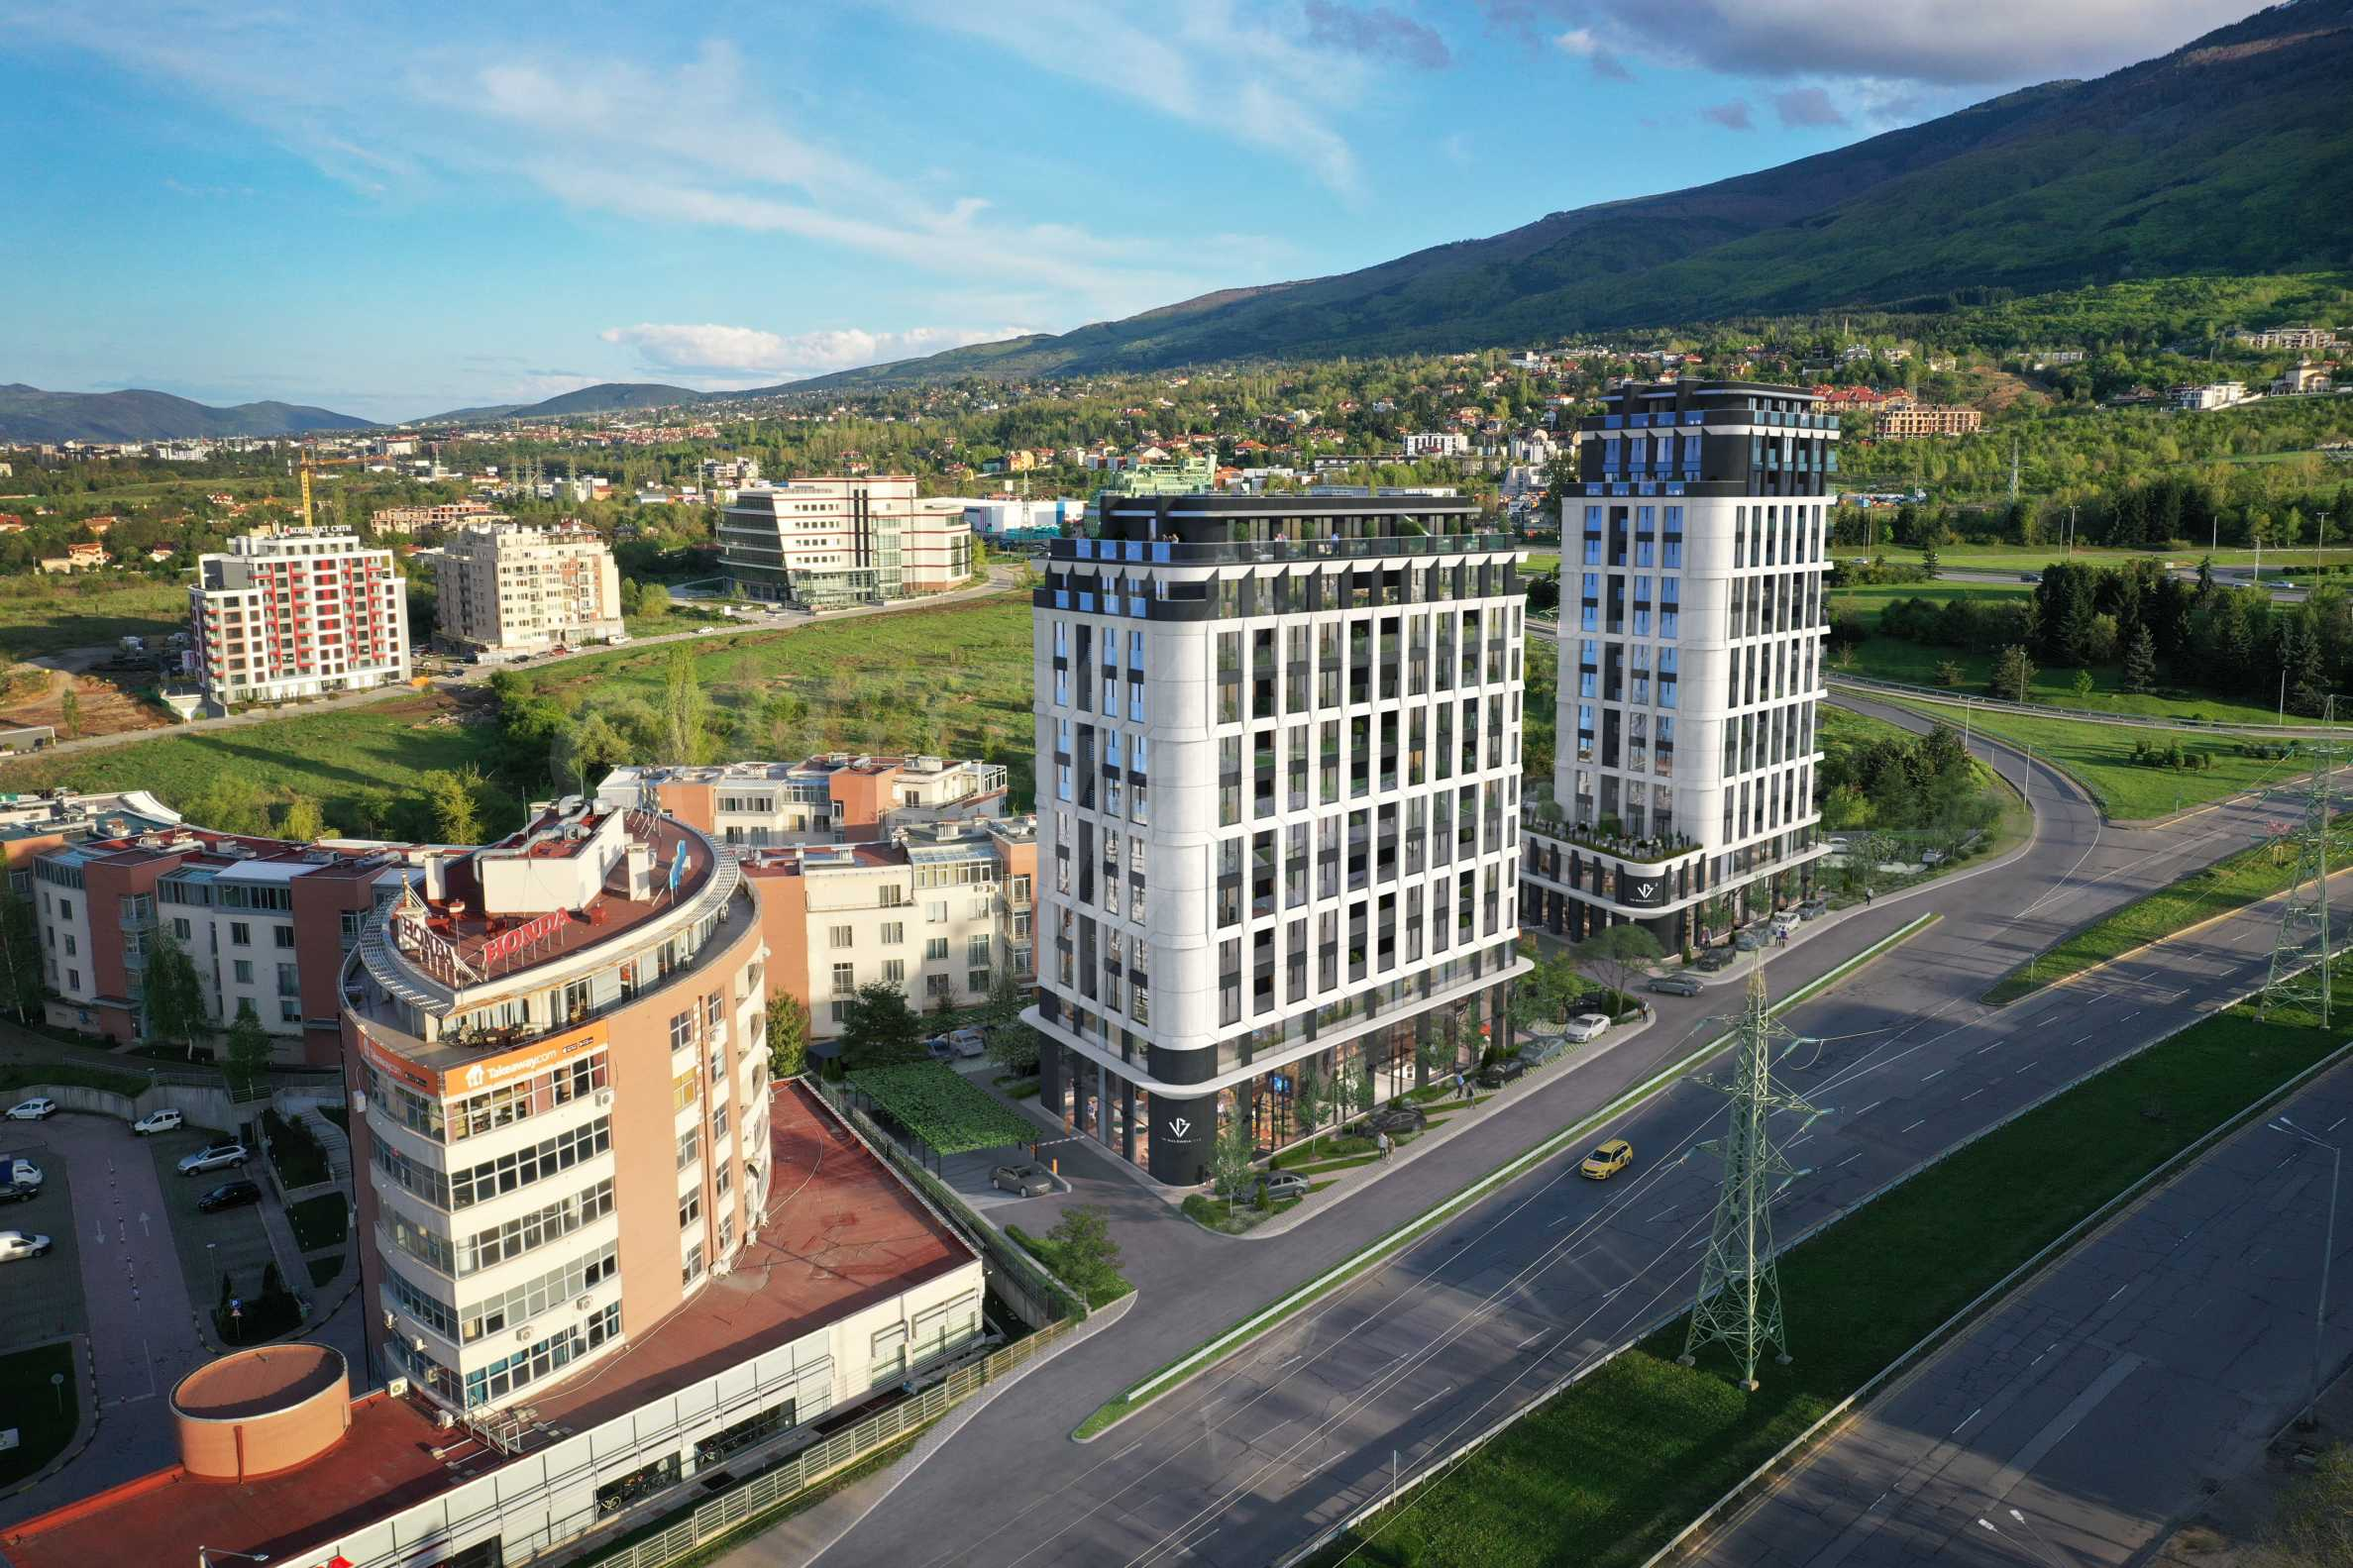 Via Bulgaria 2 - new exclusive residential building on Bulgaria Blvd. 2